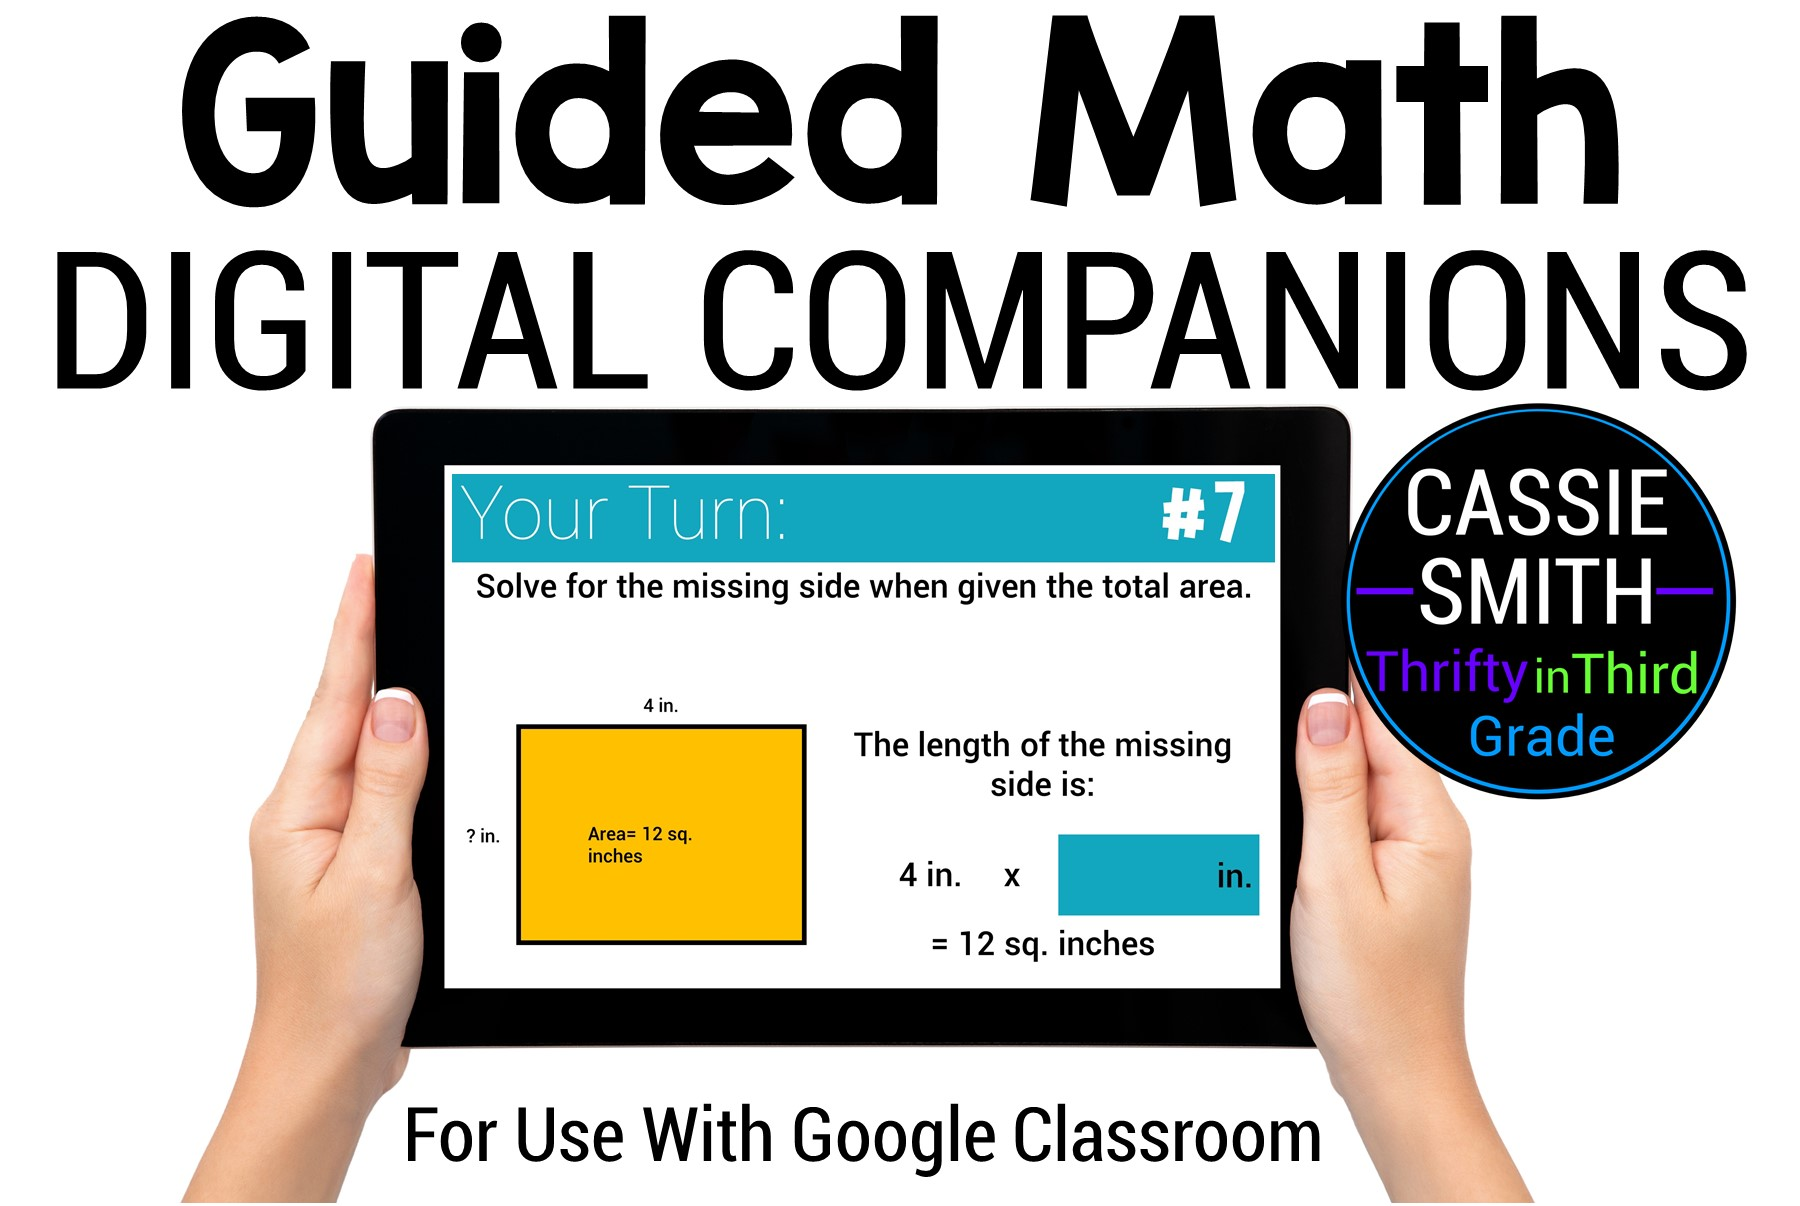 Digital Companions for Guided Math Units